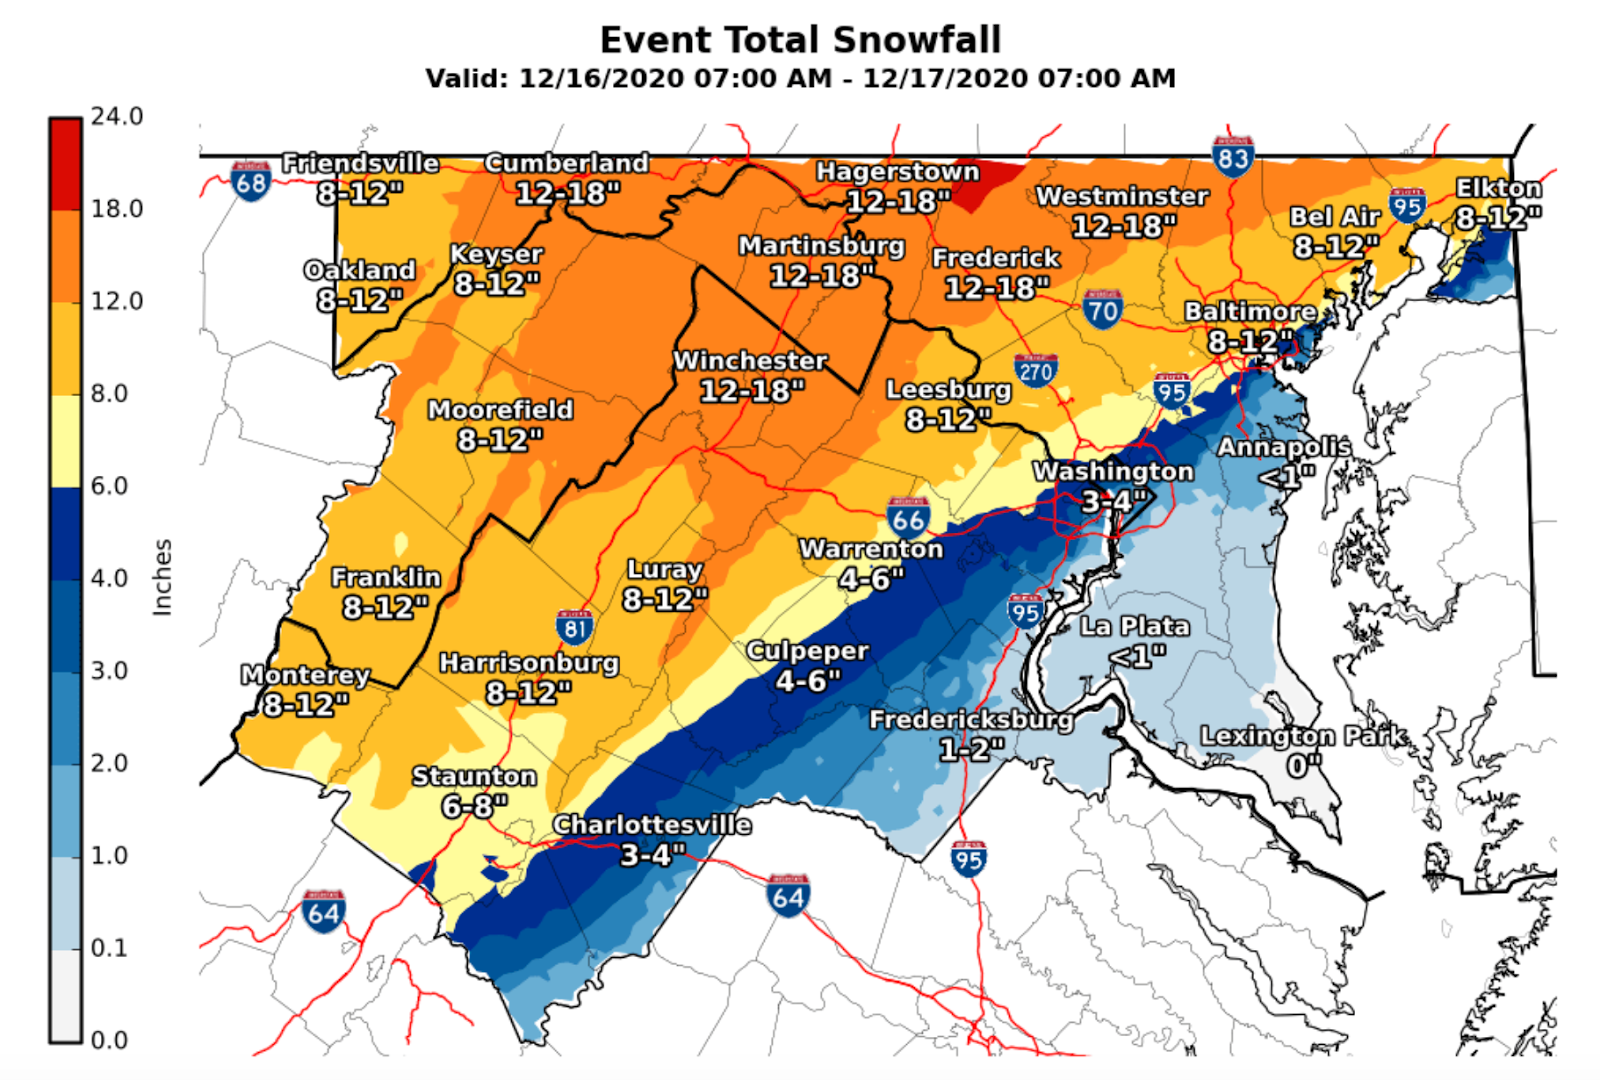 Maryland Announces Statewide Efforts to Prepare for Heavy Snowfall, Adverse Conditions; Marylanders Urged to Exercise Caution